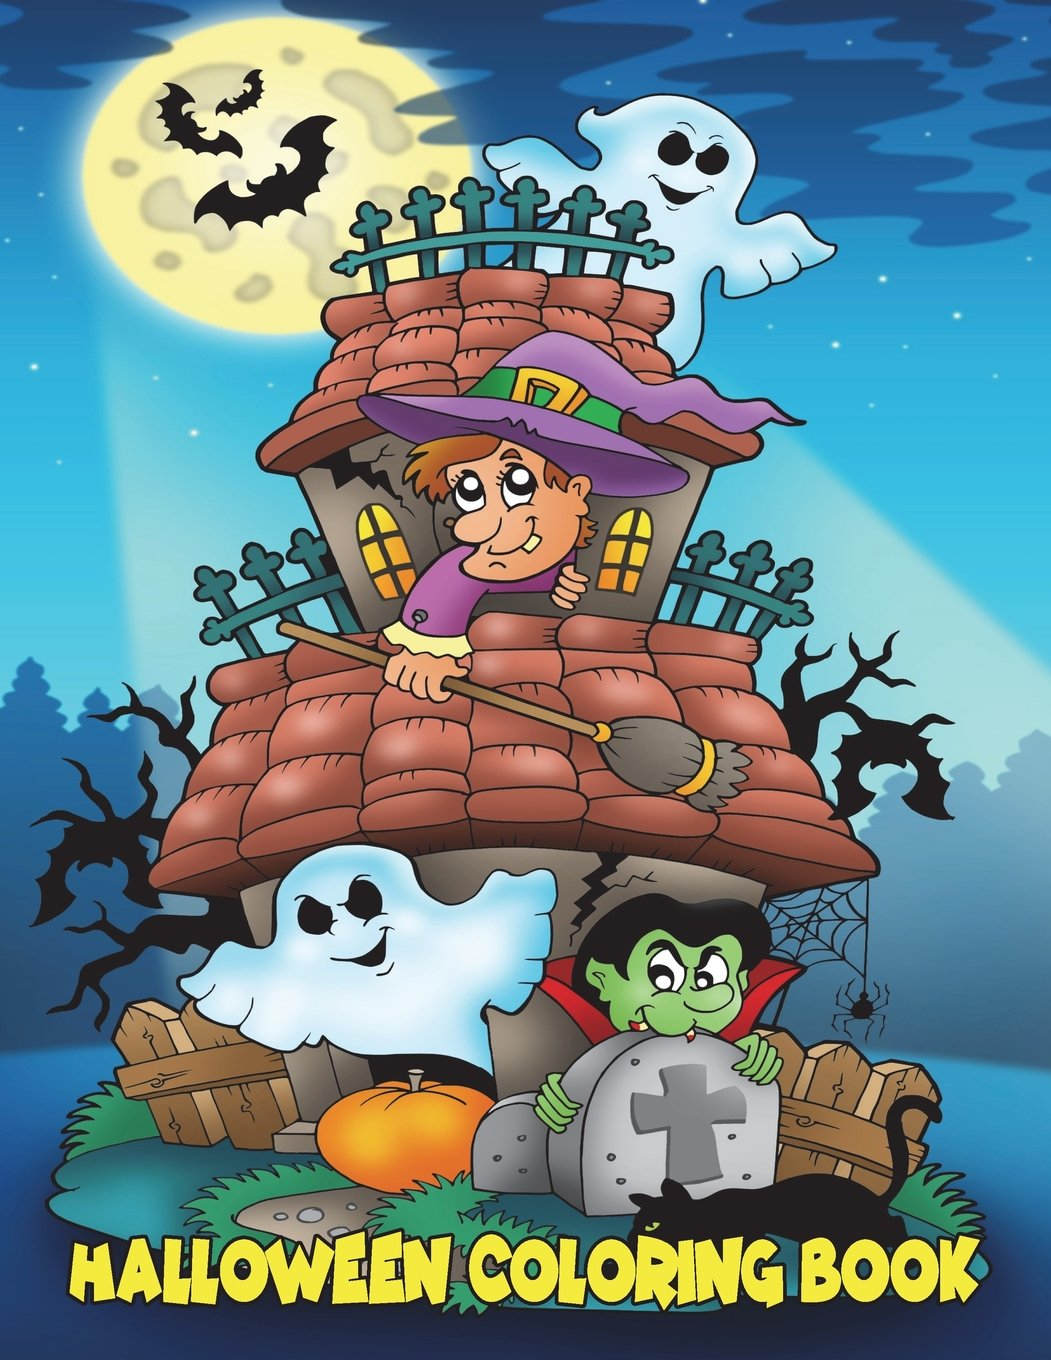 Halloween Coloring Book: For Kids Ages 4-8, 8-12: Panista Publishing ...